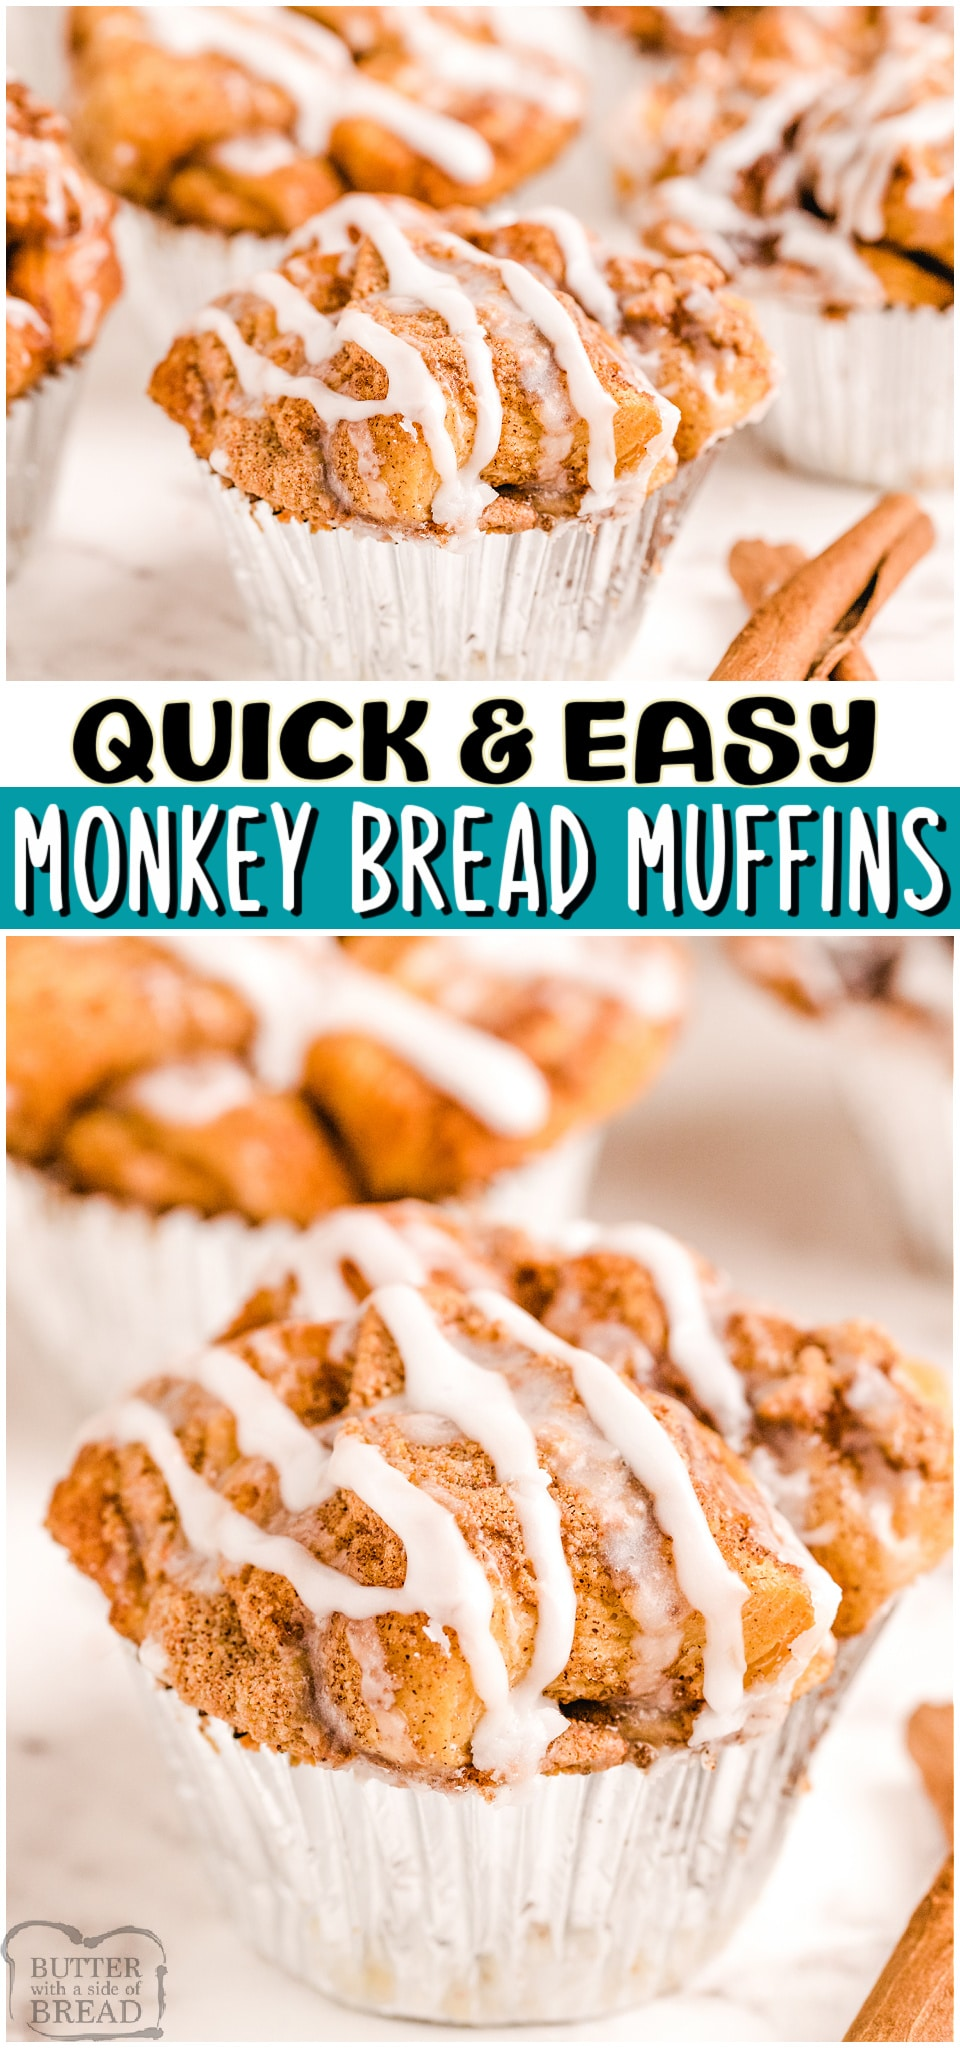 Monkey Bread Muffins made with just a handful of ingredients & ready in 30 minutes! All the buttery sweet butterscotch & cinnamon flavors of Monkey Bread, only in muffin form!#monkeybread #muffins #cinnamon #baking #breakfast #easyrecipe from BUTTER WITH A SIDE OF BREAD